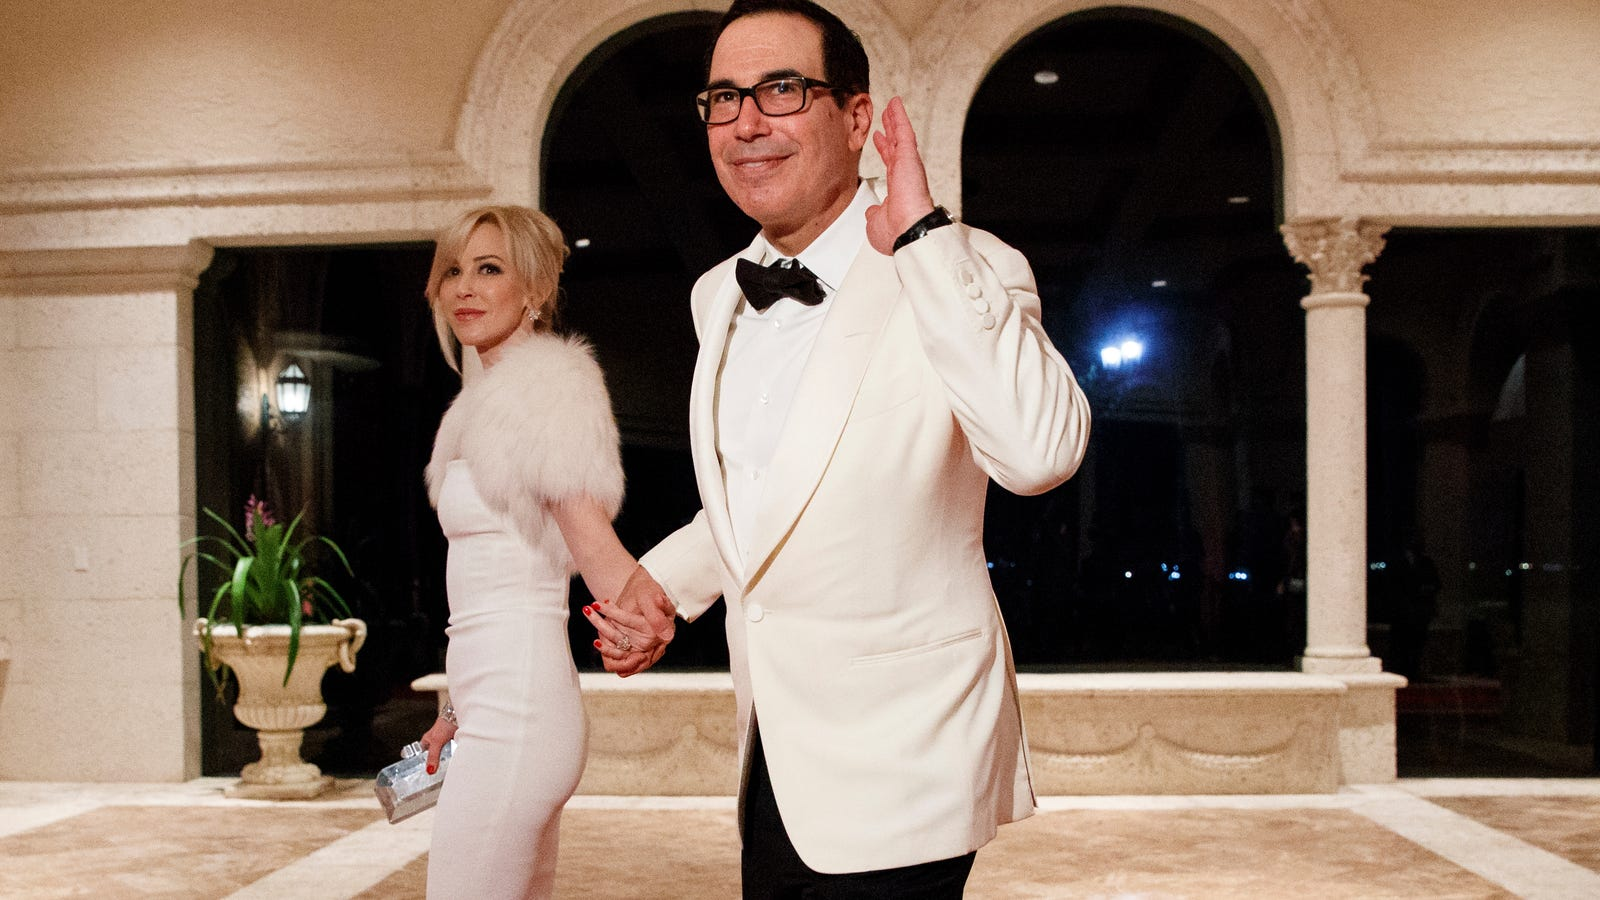 Louise Linton Bills >> Louise Linton Is a Very Bad DC Socialite, According to DC Socialites